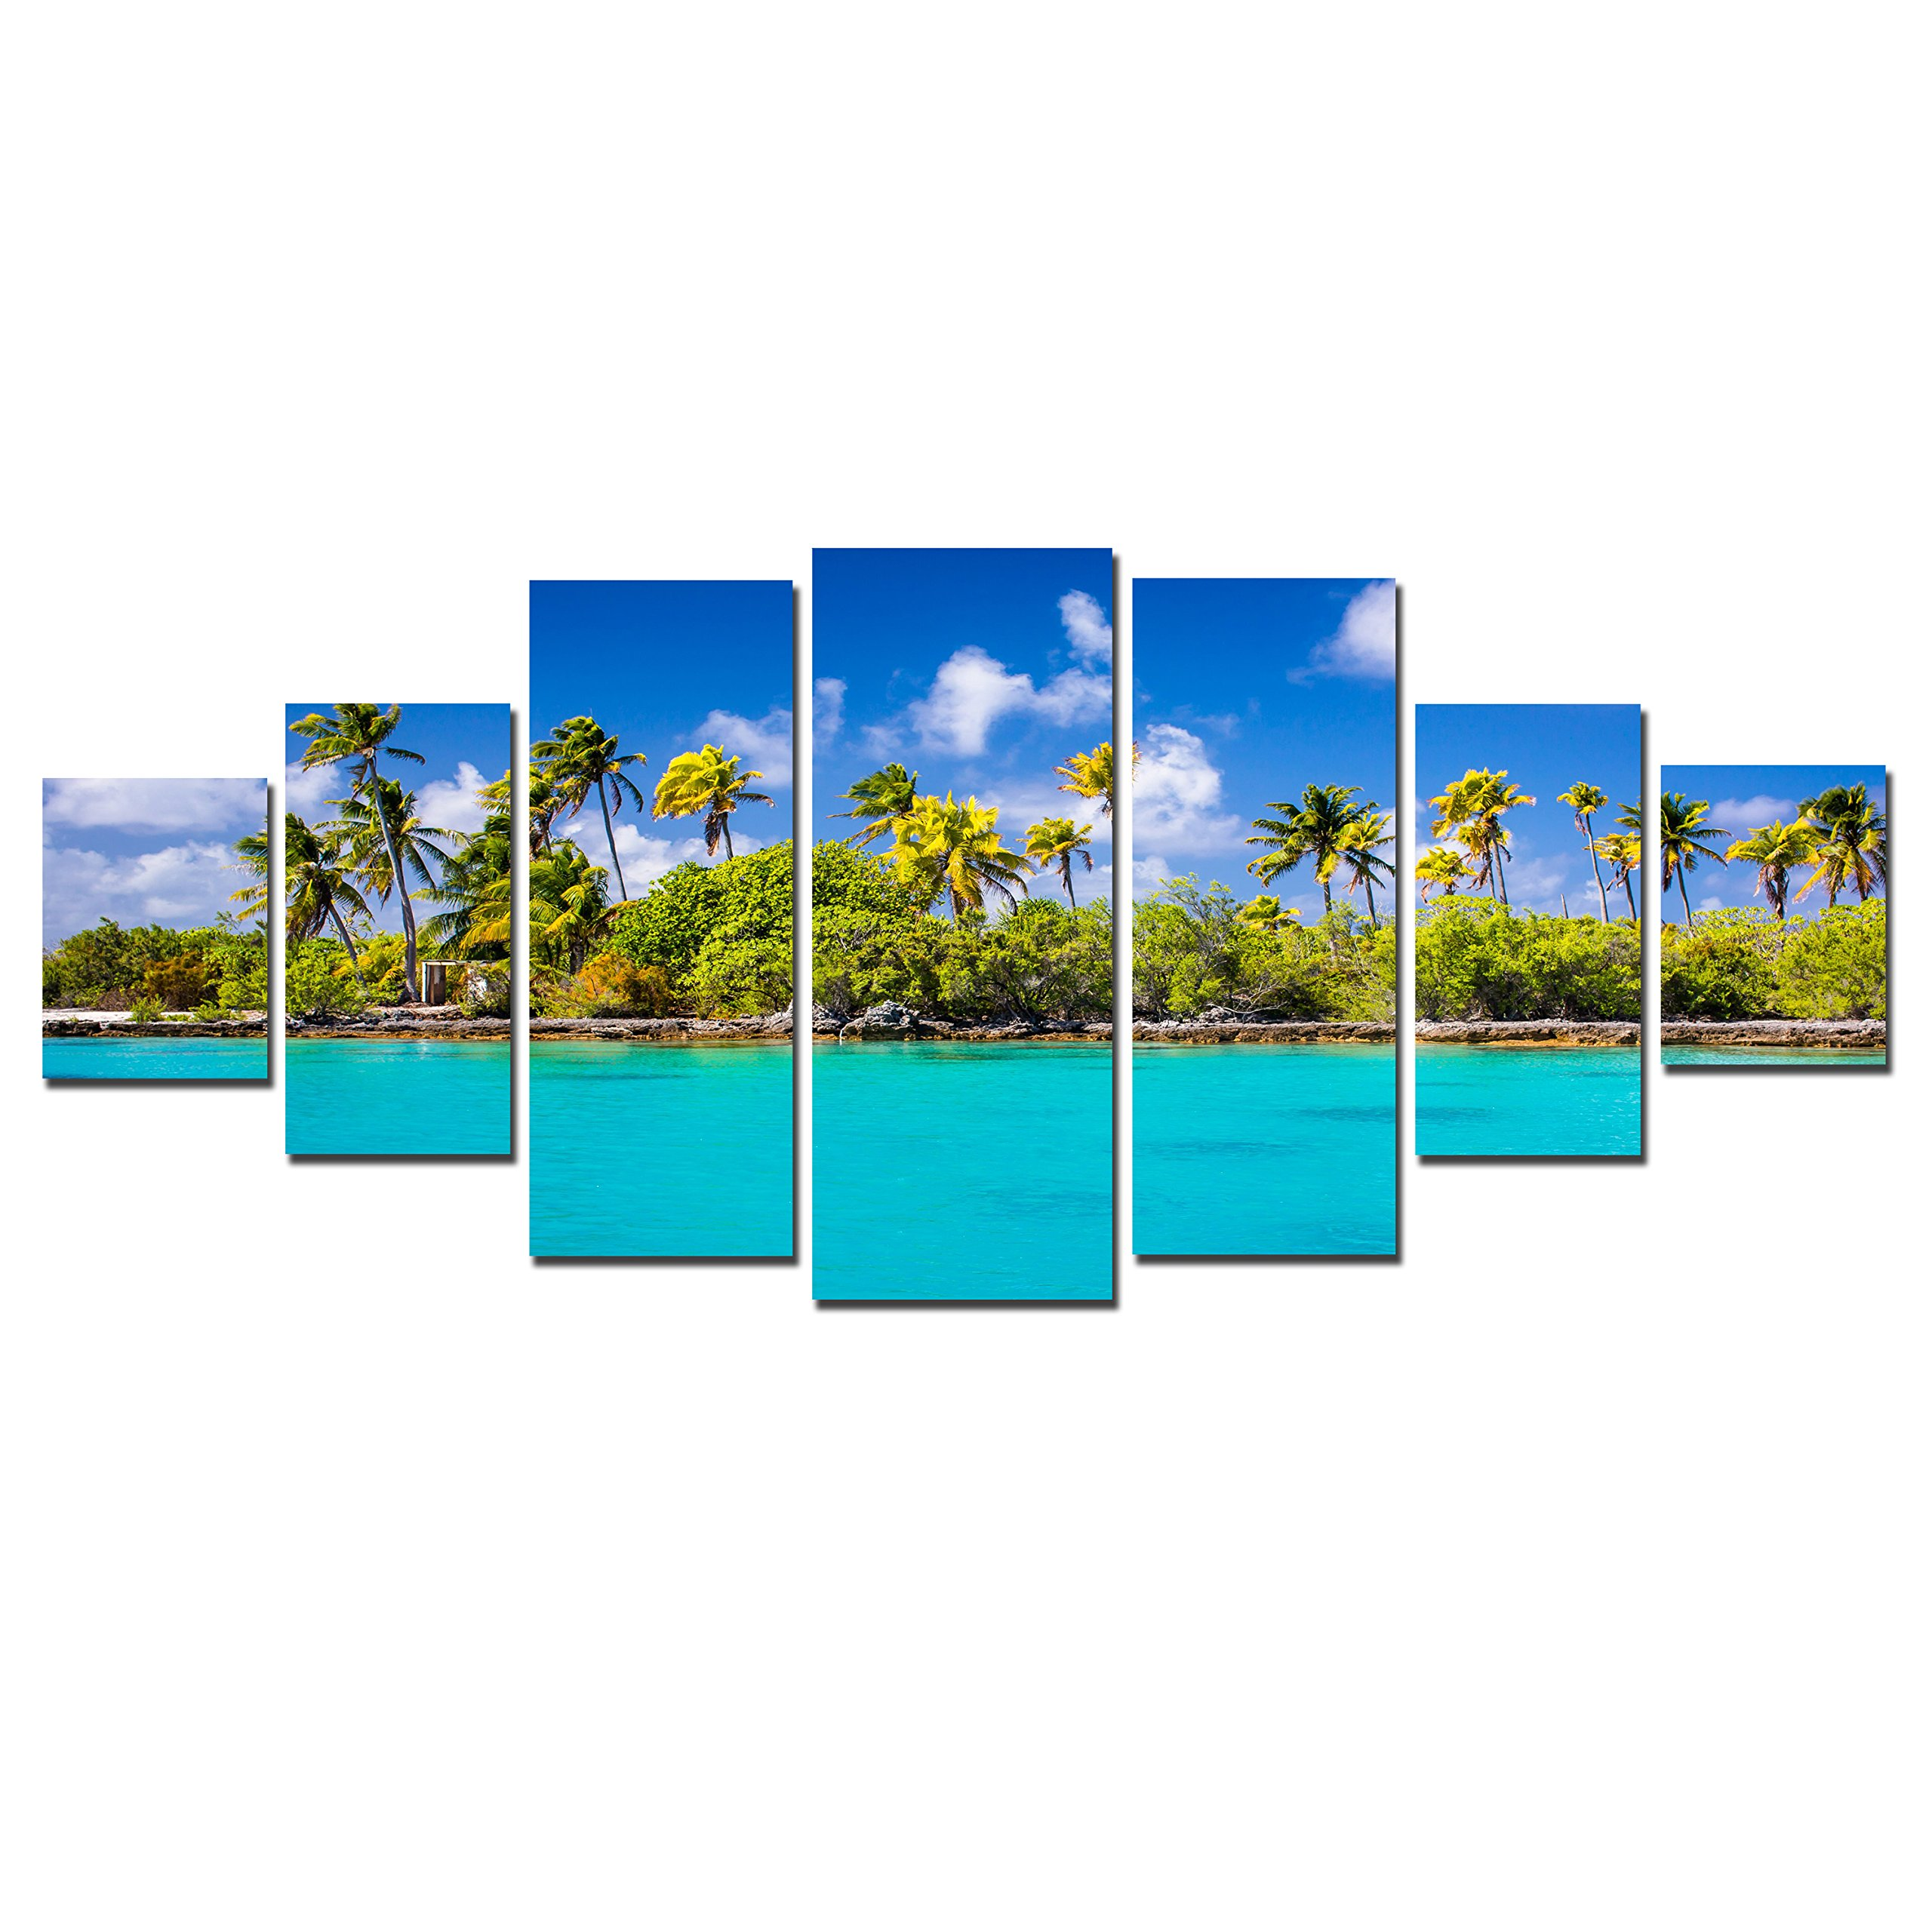 Startonight Huge Canvas Wall Art Sunny Beach, USA Large Home Decor, Dual View Surprise Artwork Modern Big Framed Wall Art Set of 7 Panels Total 39.37 x 94.49 inch by Startonight